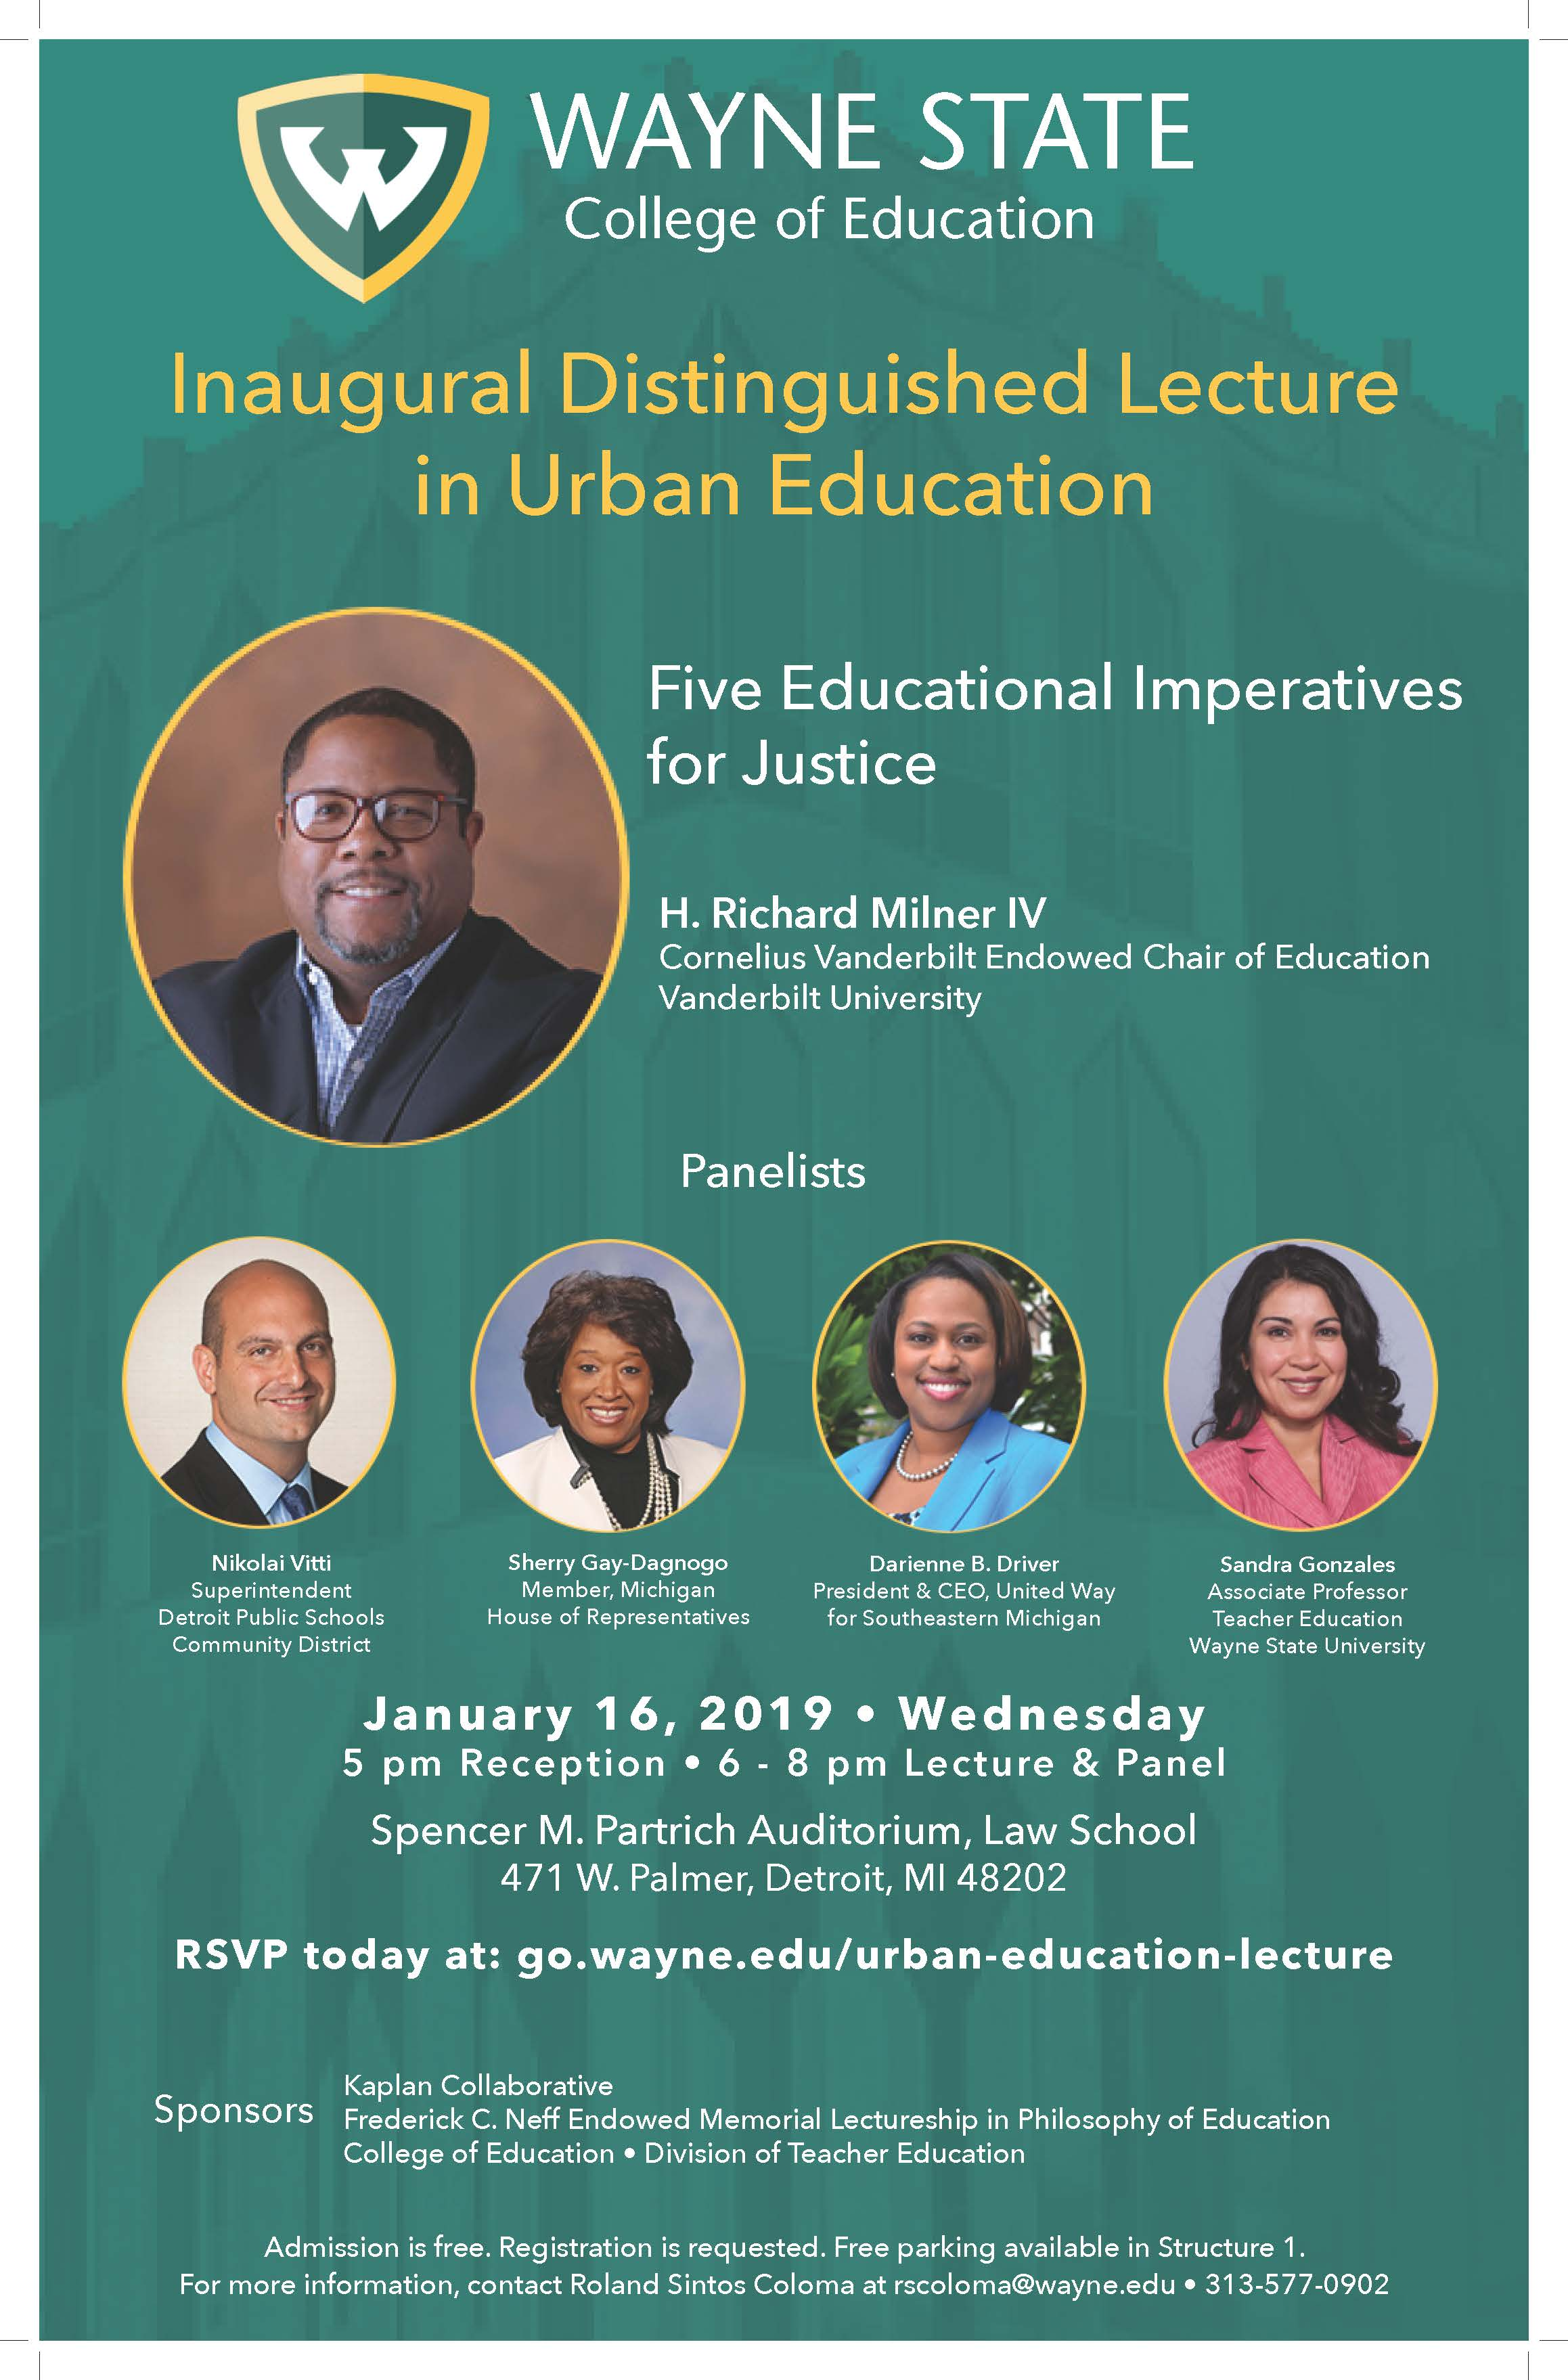 Wayne State University College of Education hosts inaugural Distinguished Lecture in Urban Education